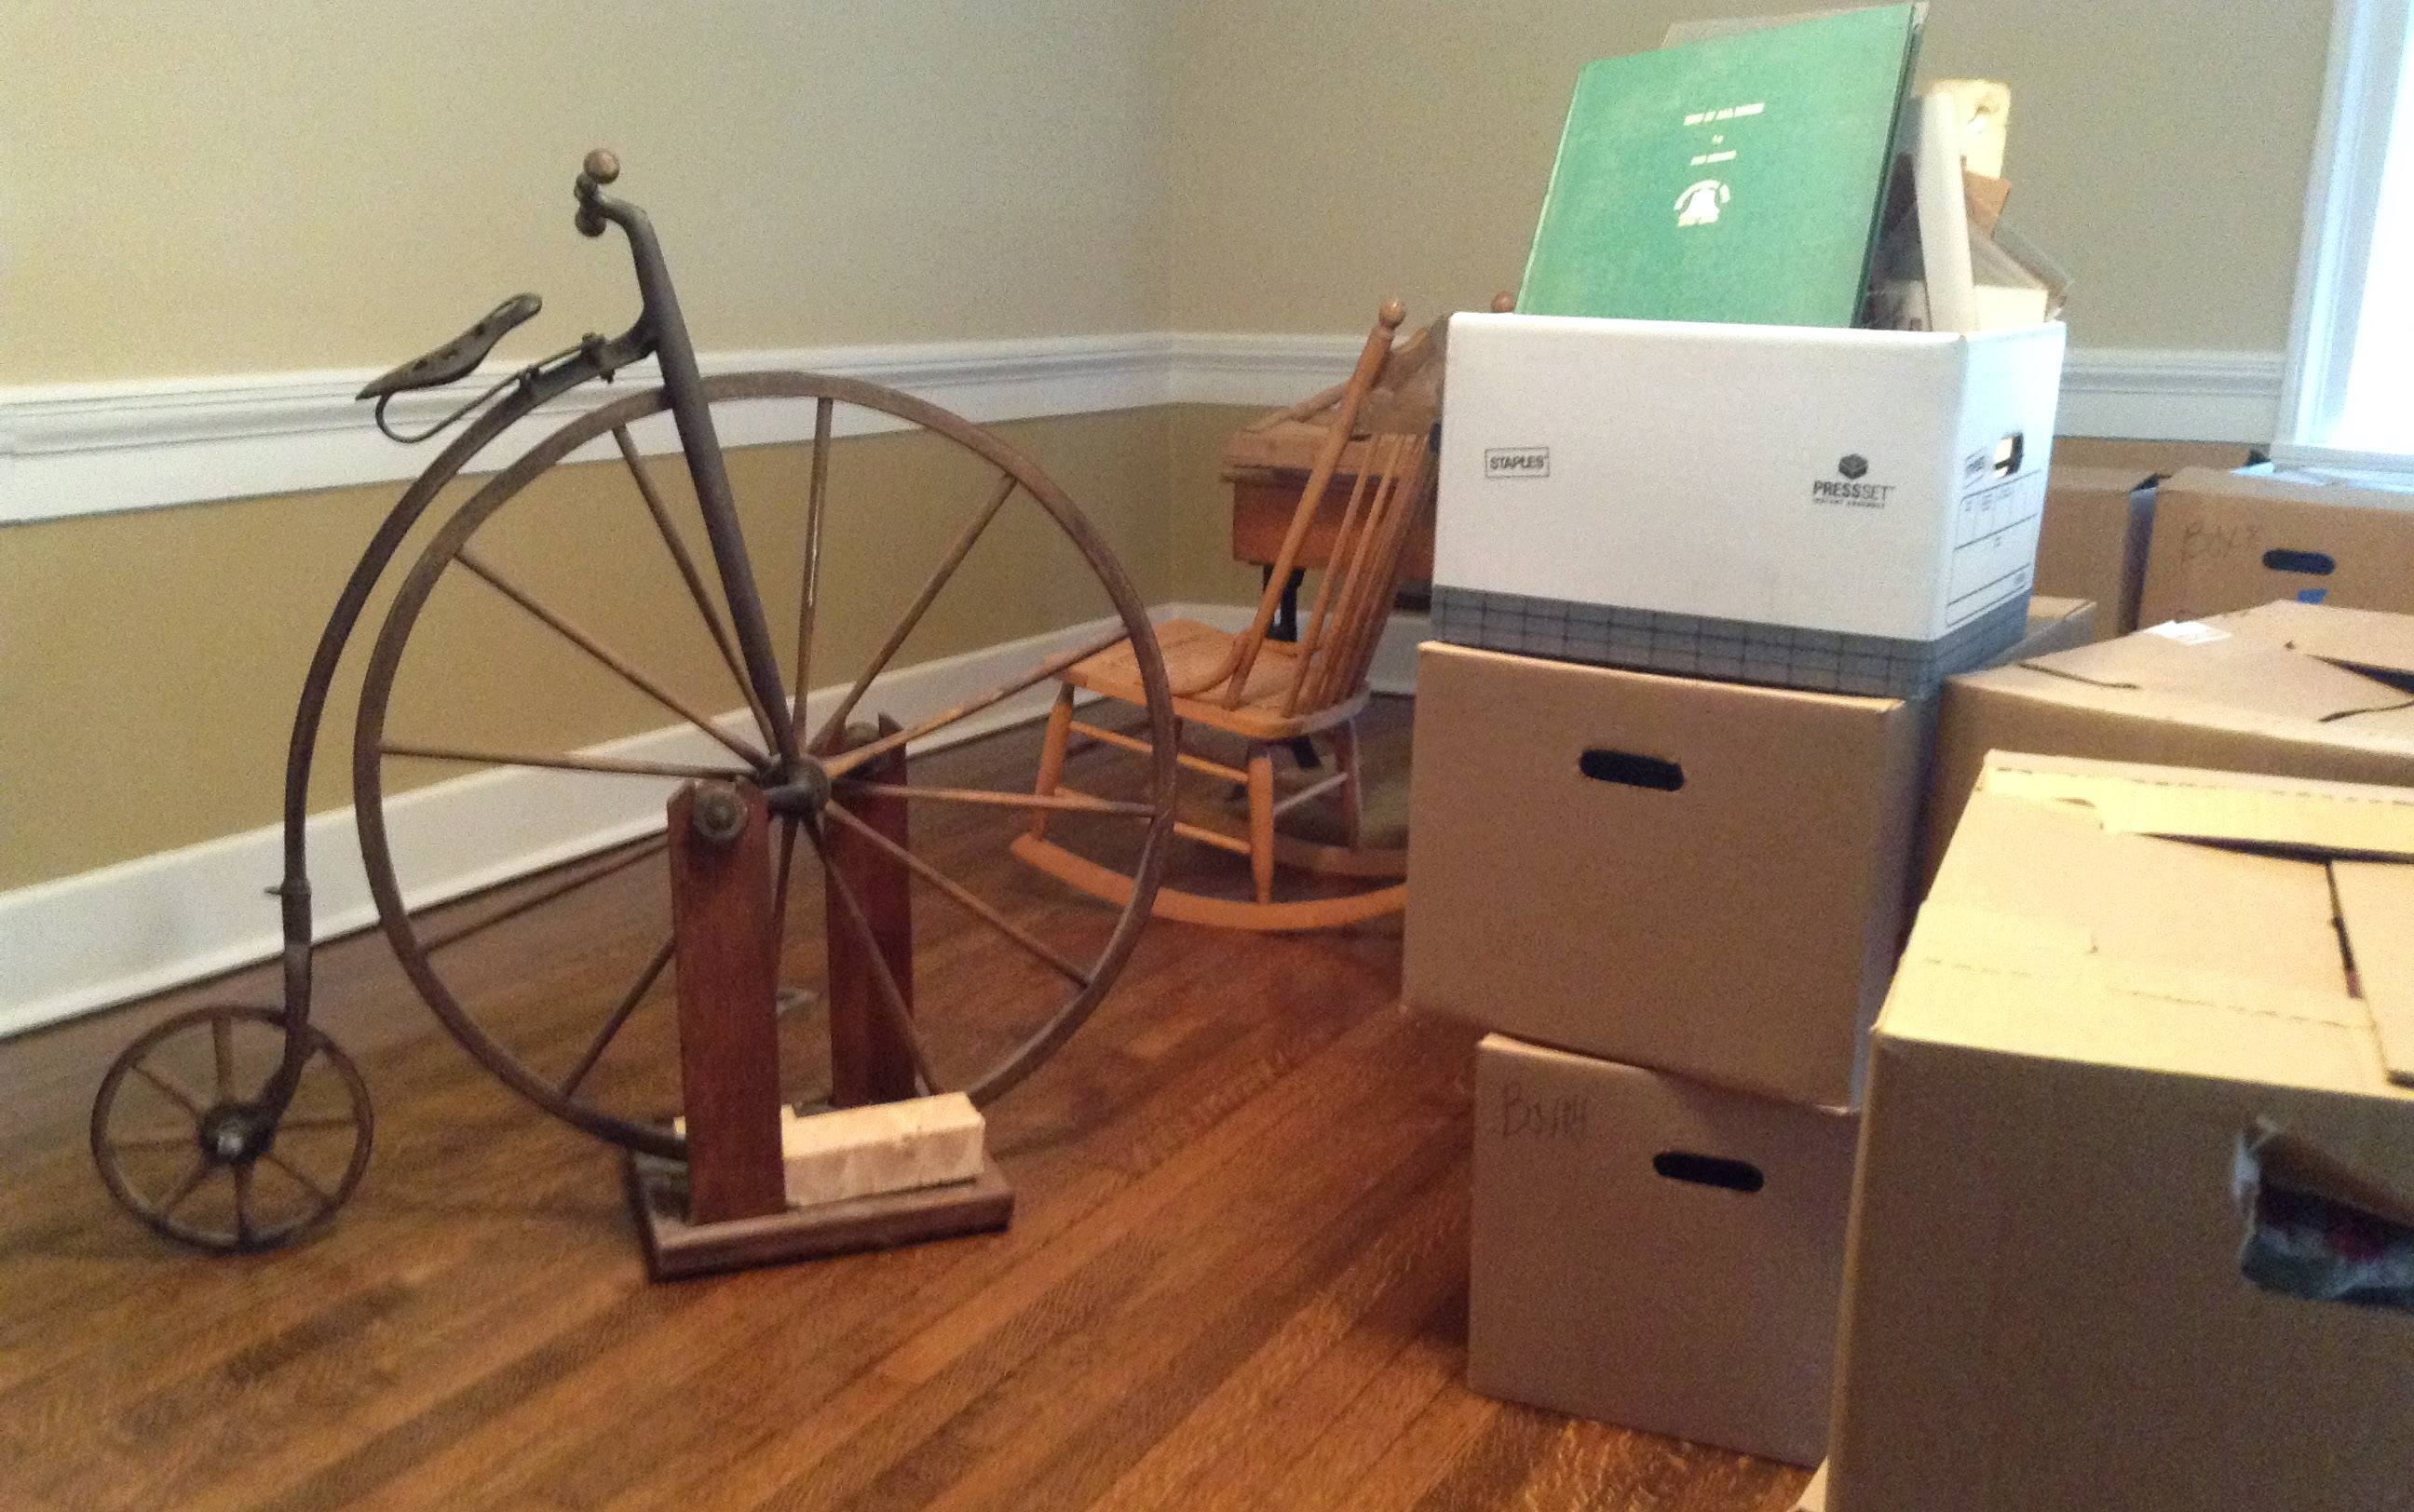 Items are being readied for display by the Wauconda Township Historical Society in the revamped Andrew C. Cook House.